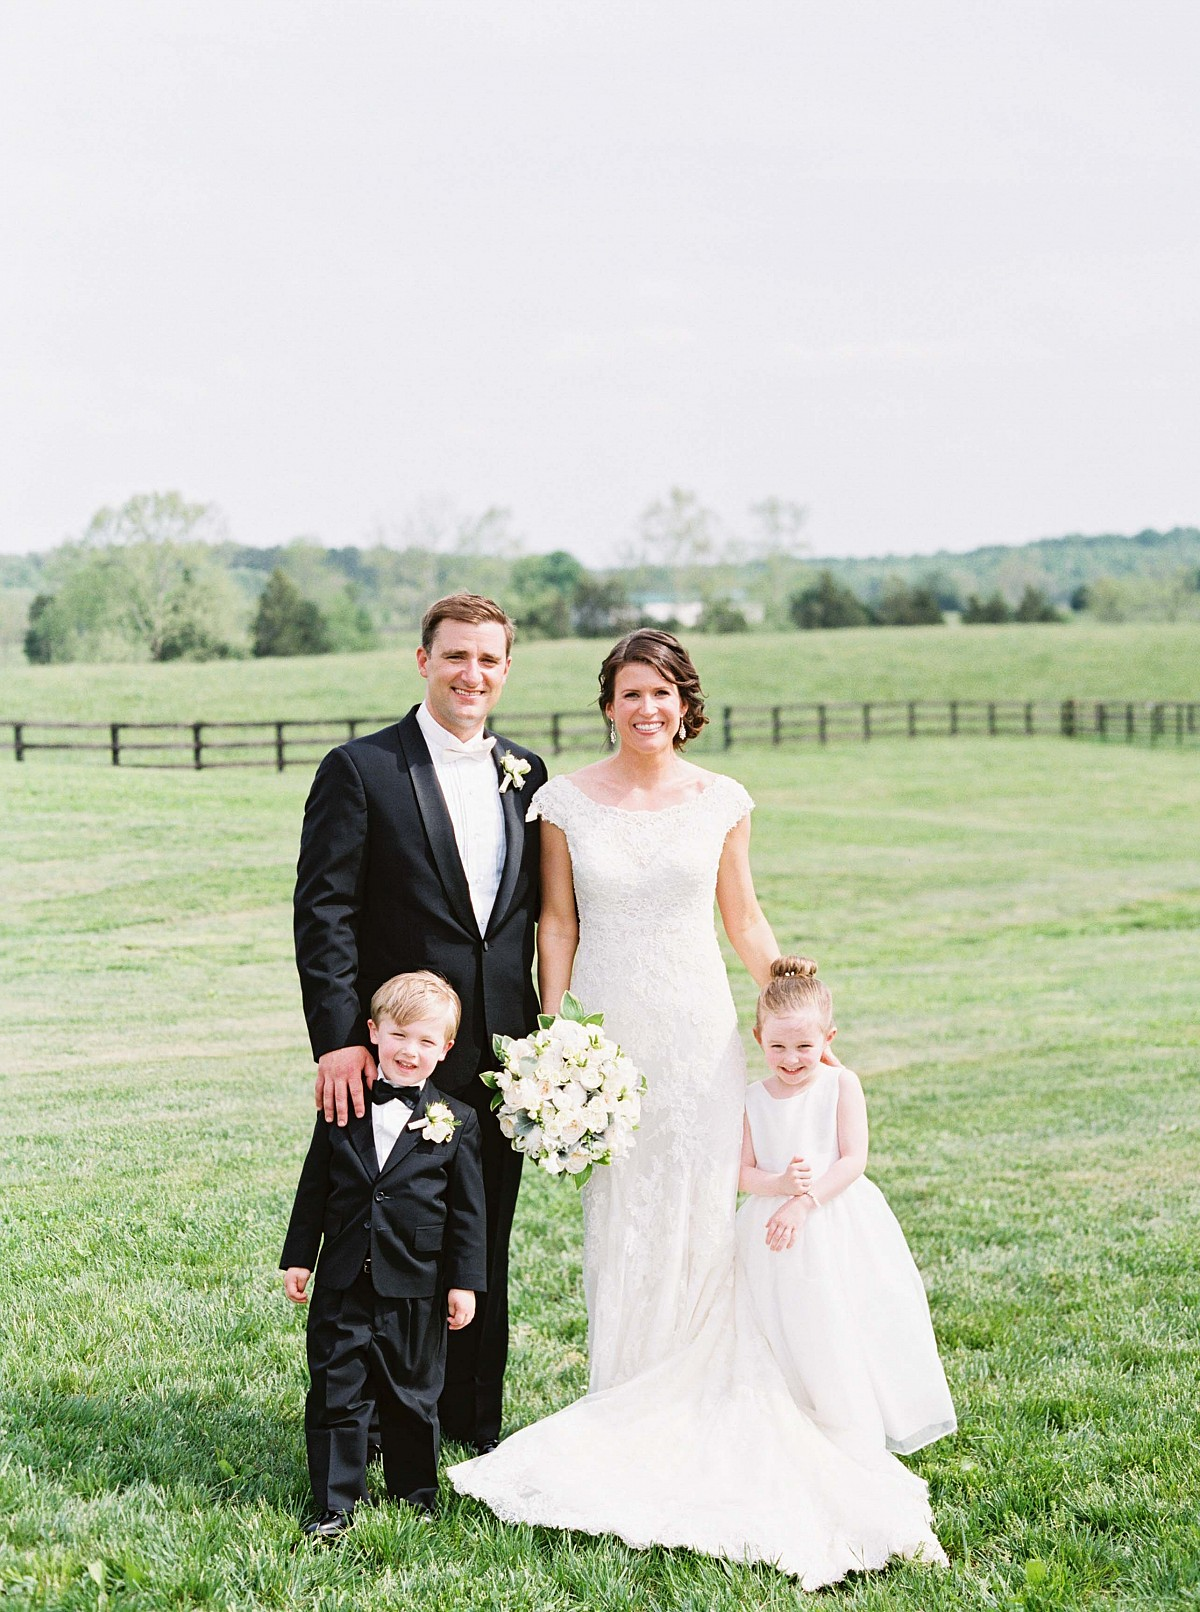 Allison and Greg's Rustic and Elegant Formal Wedding